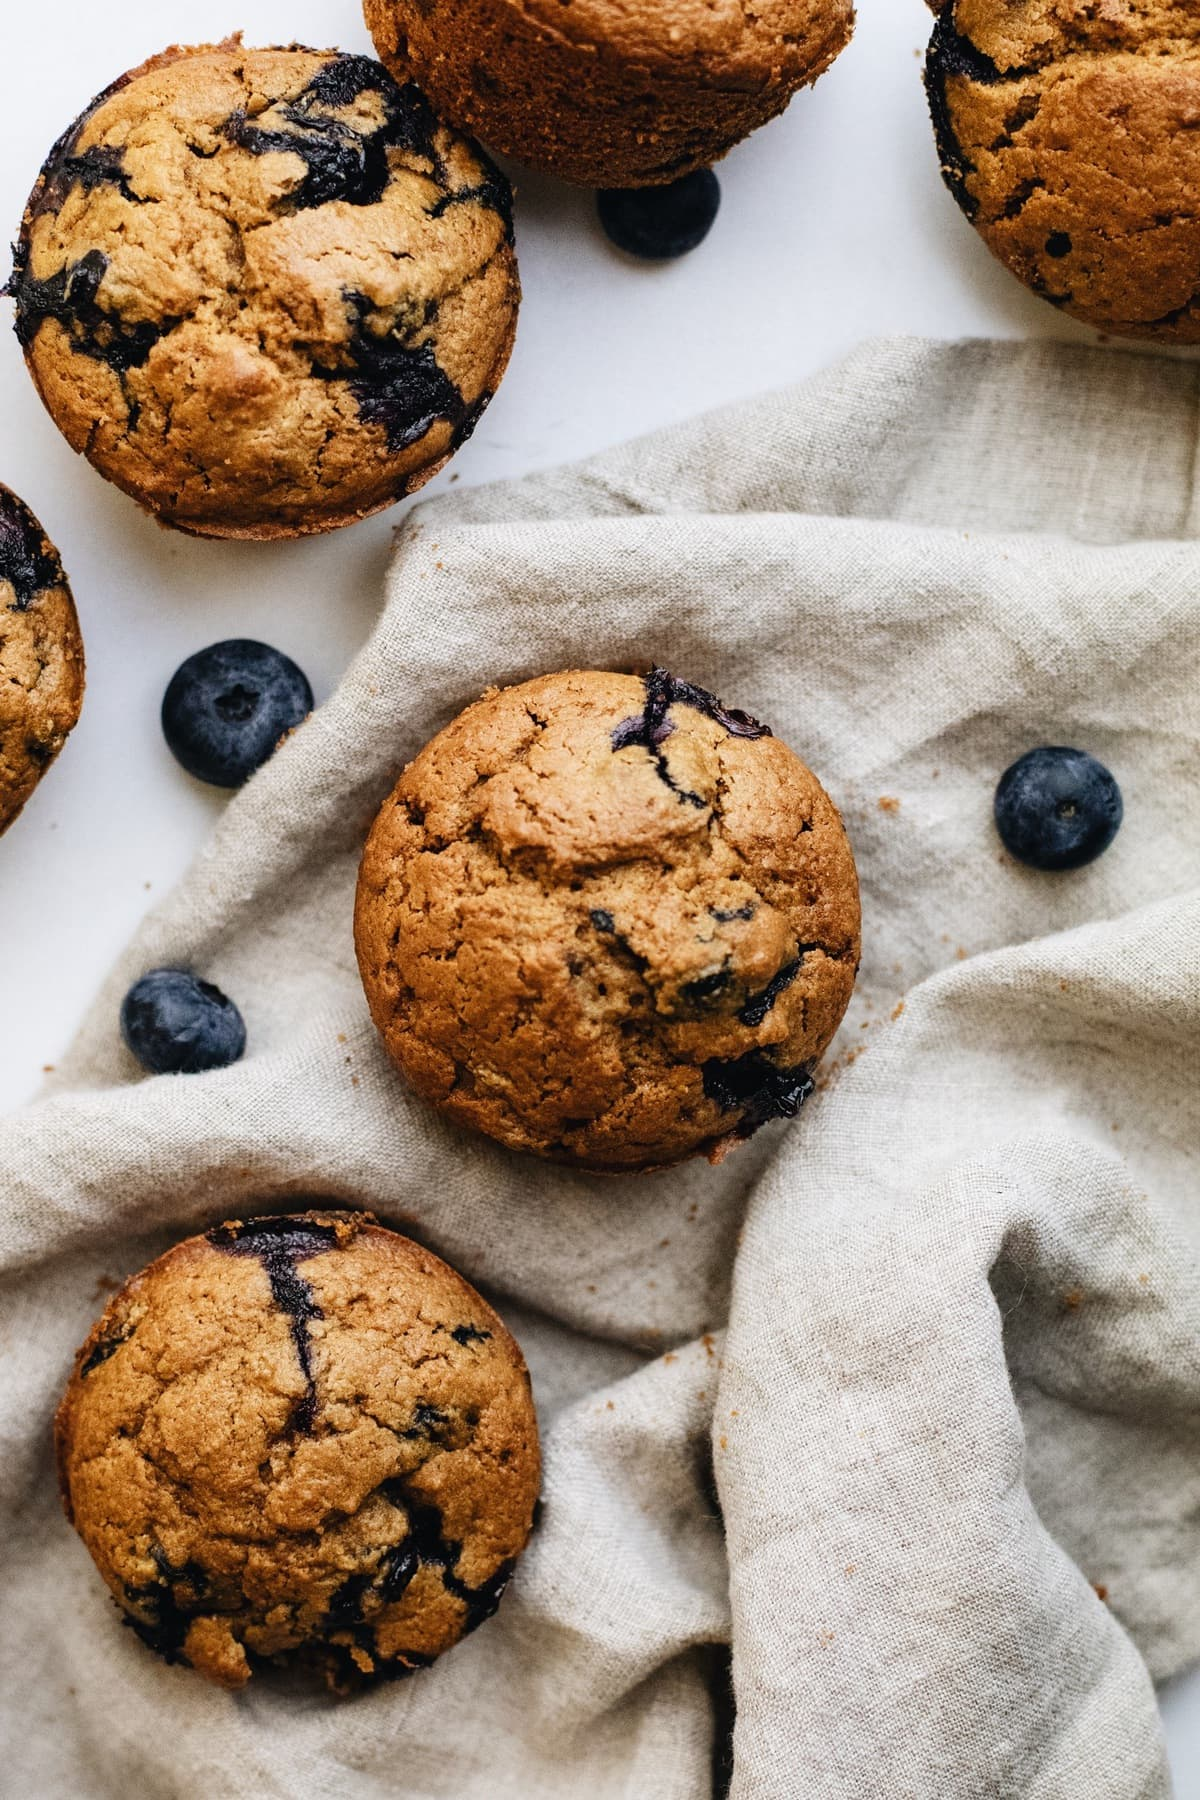 Blueberry muffins on a grey napkin with blueberries scattered around.